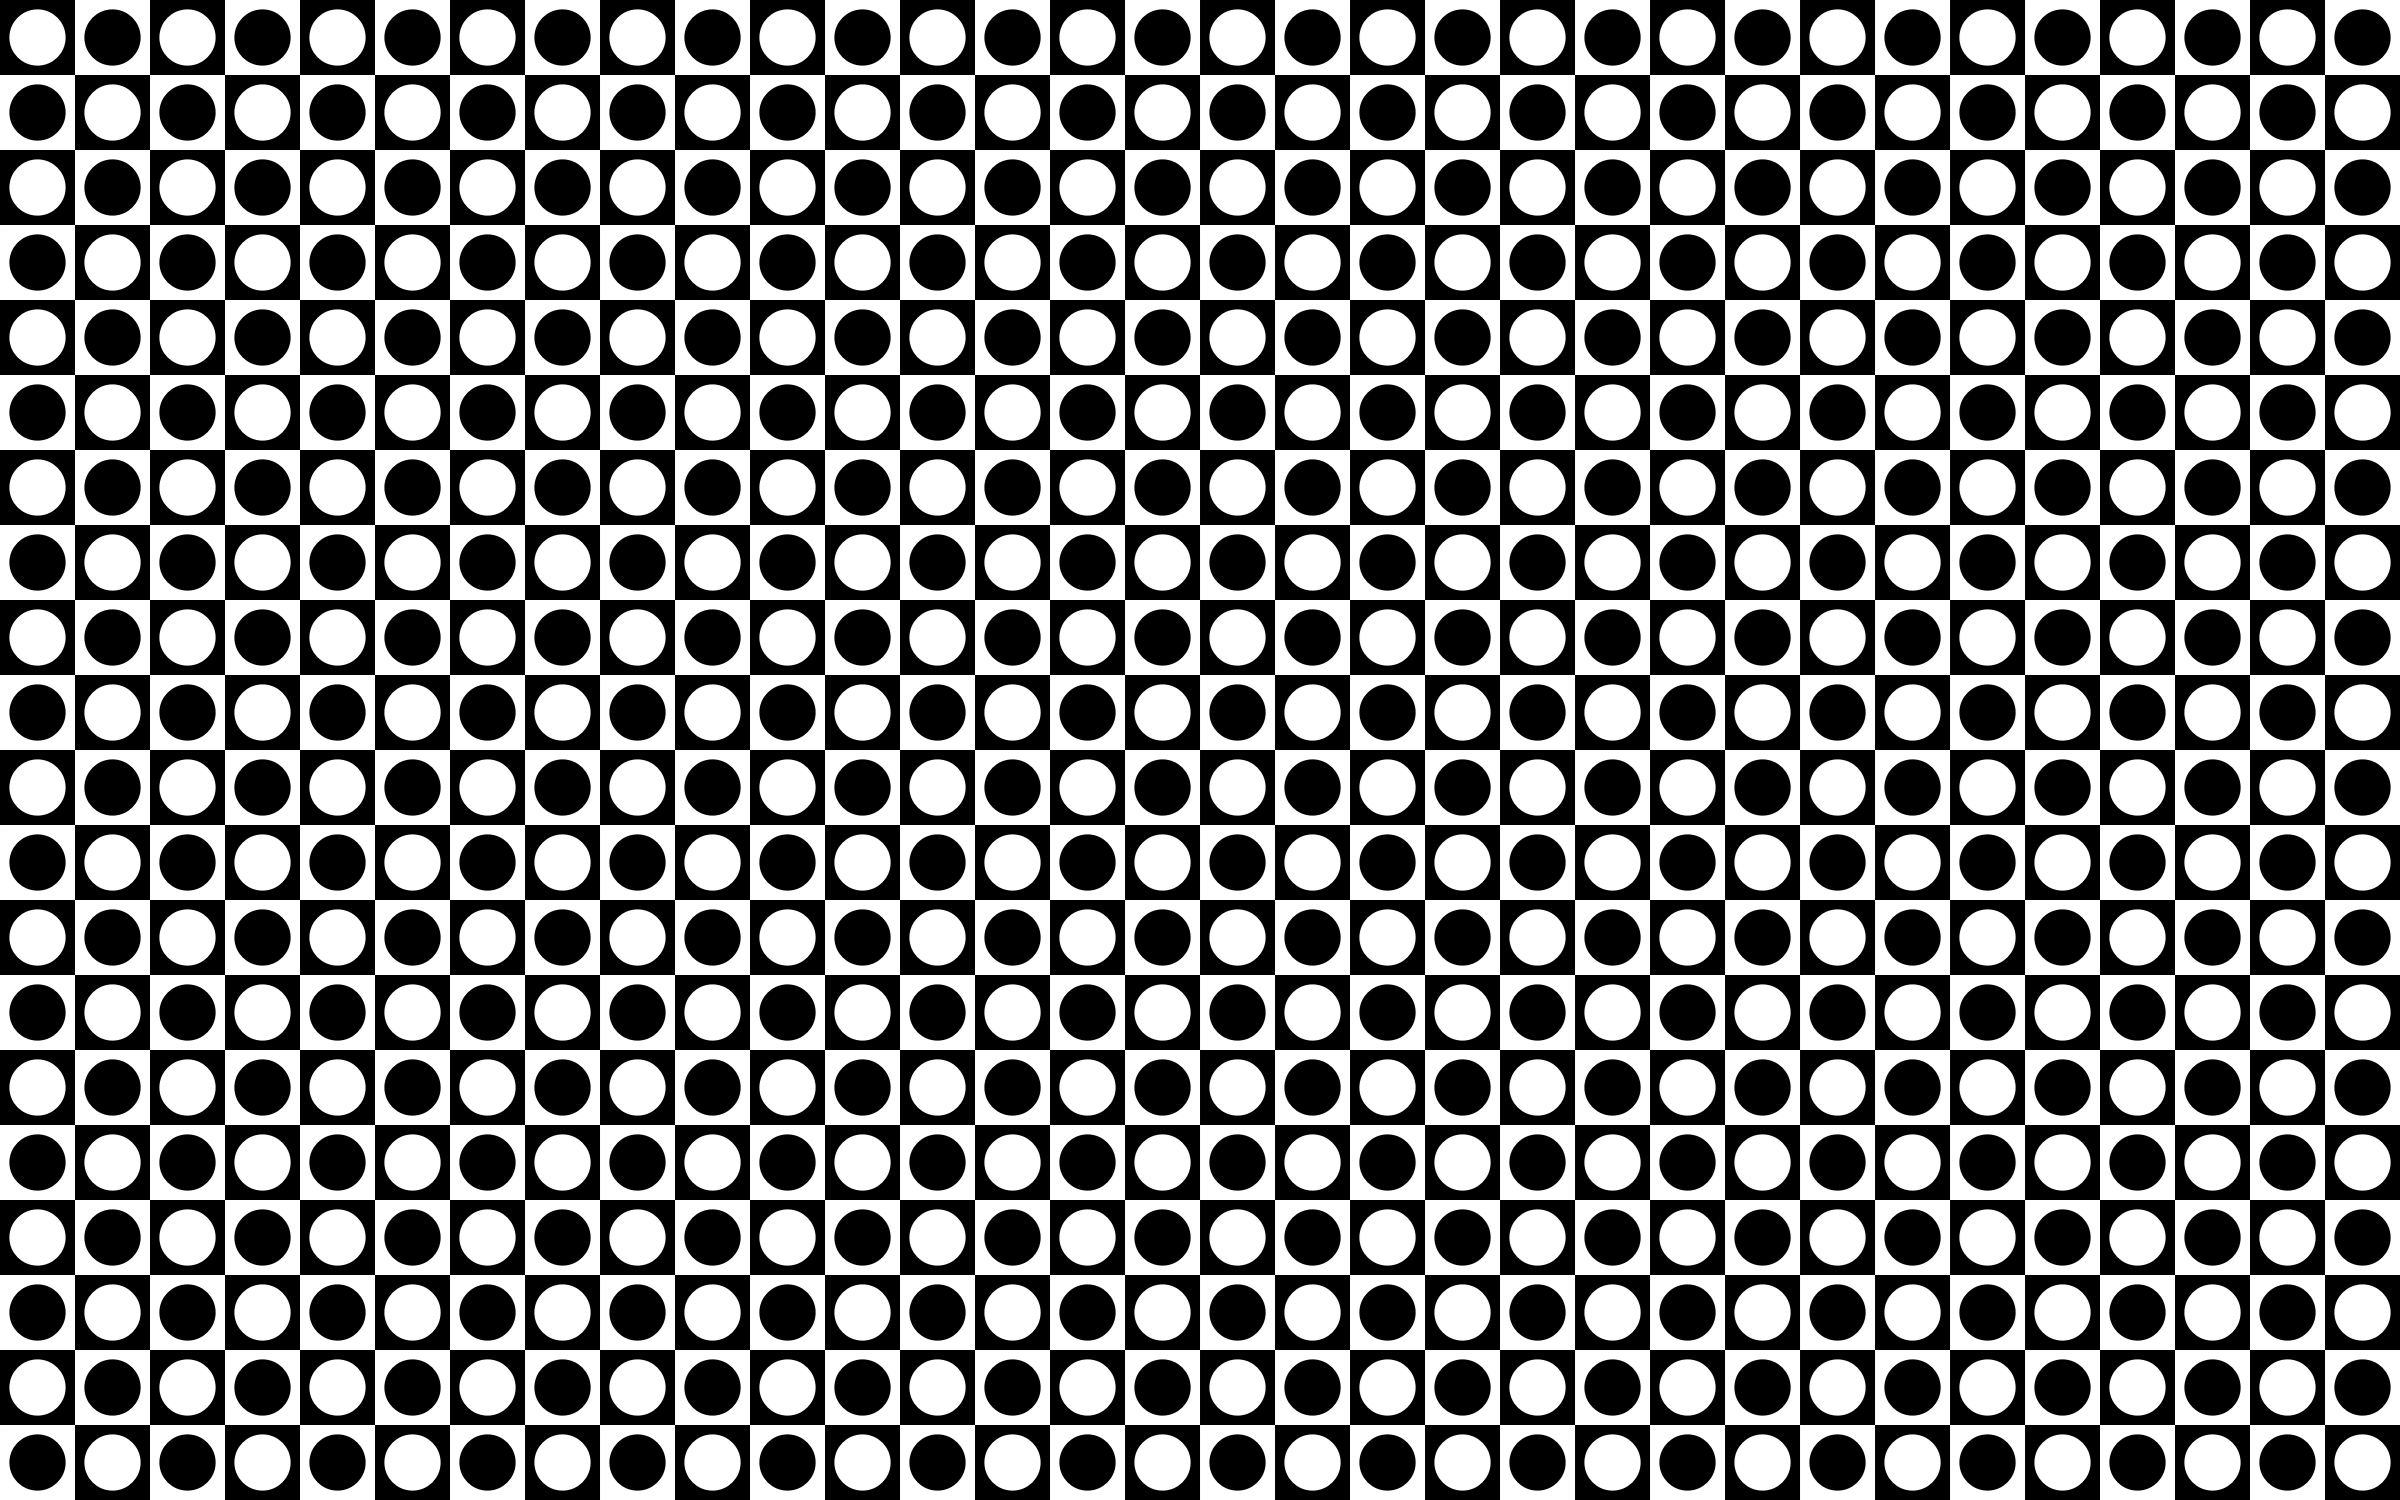 Seamless Circles And Squares Checkerboard Pattern by GDJ